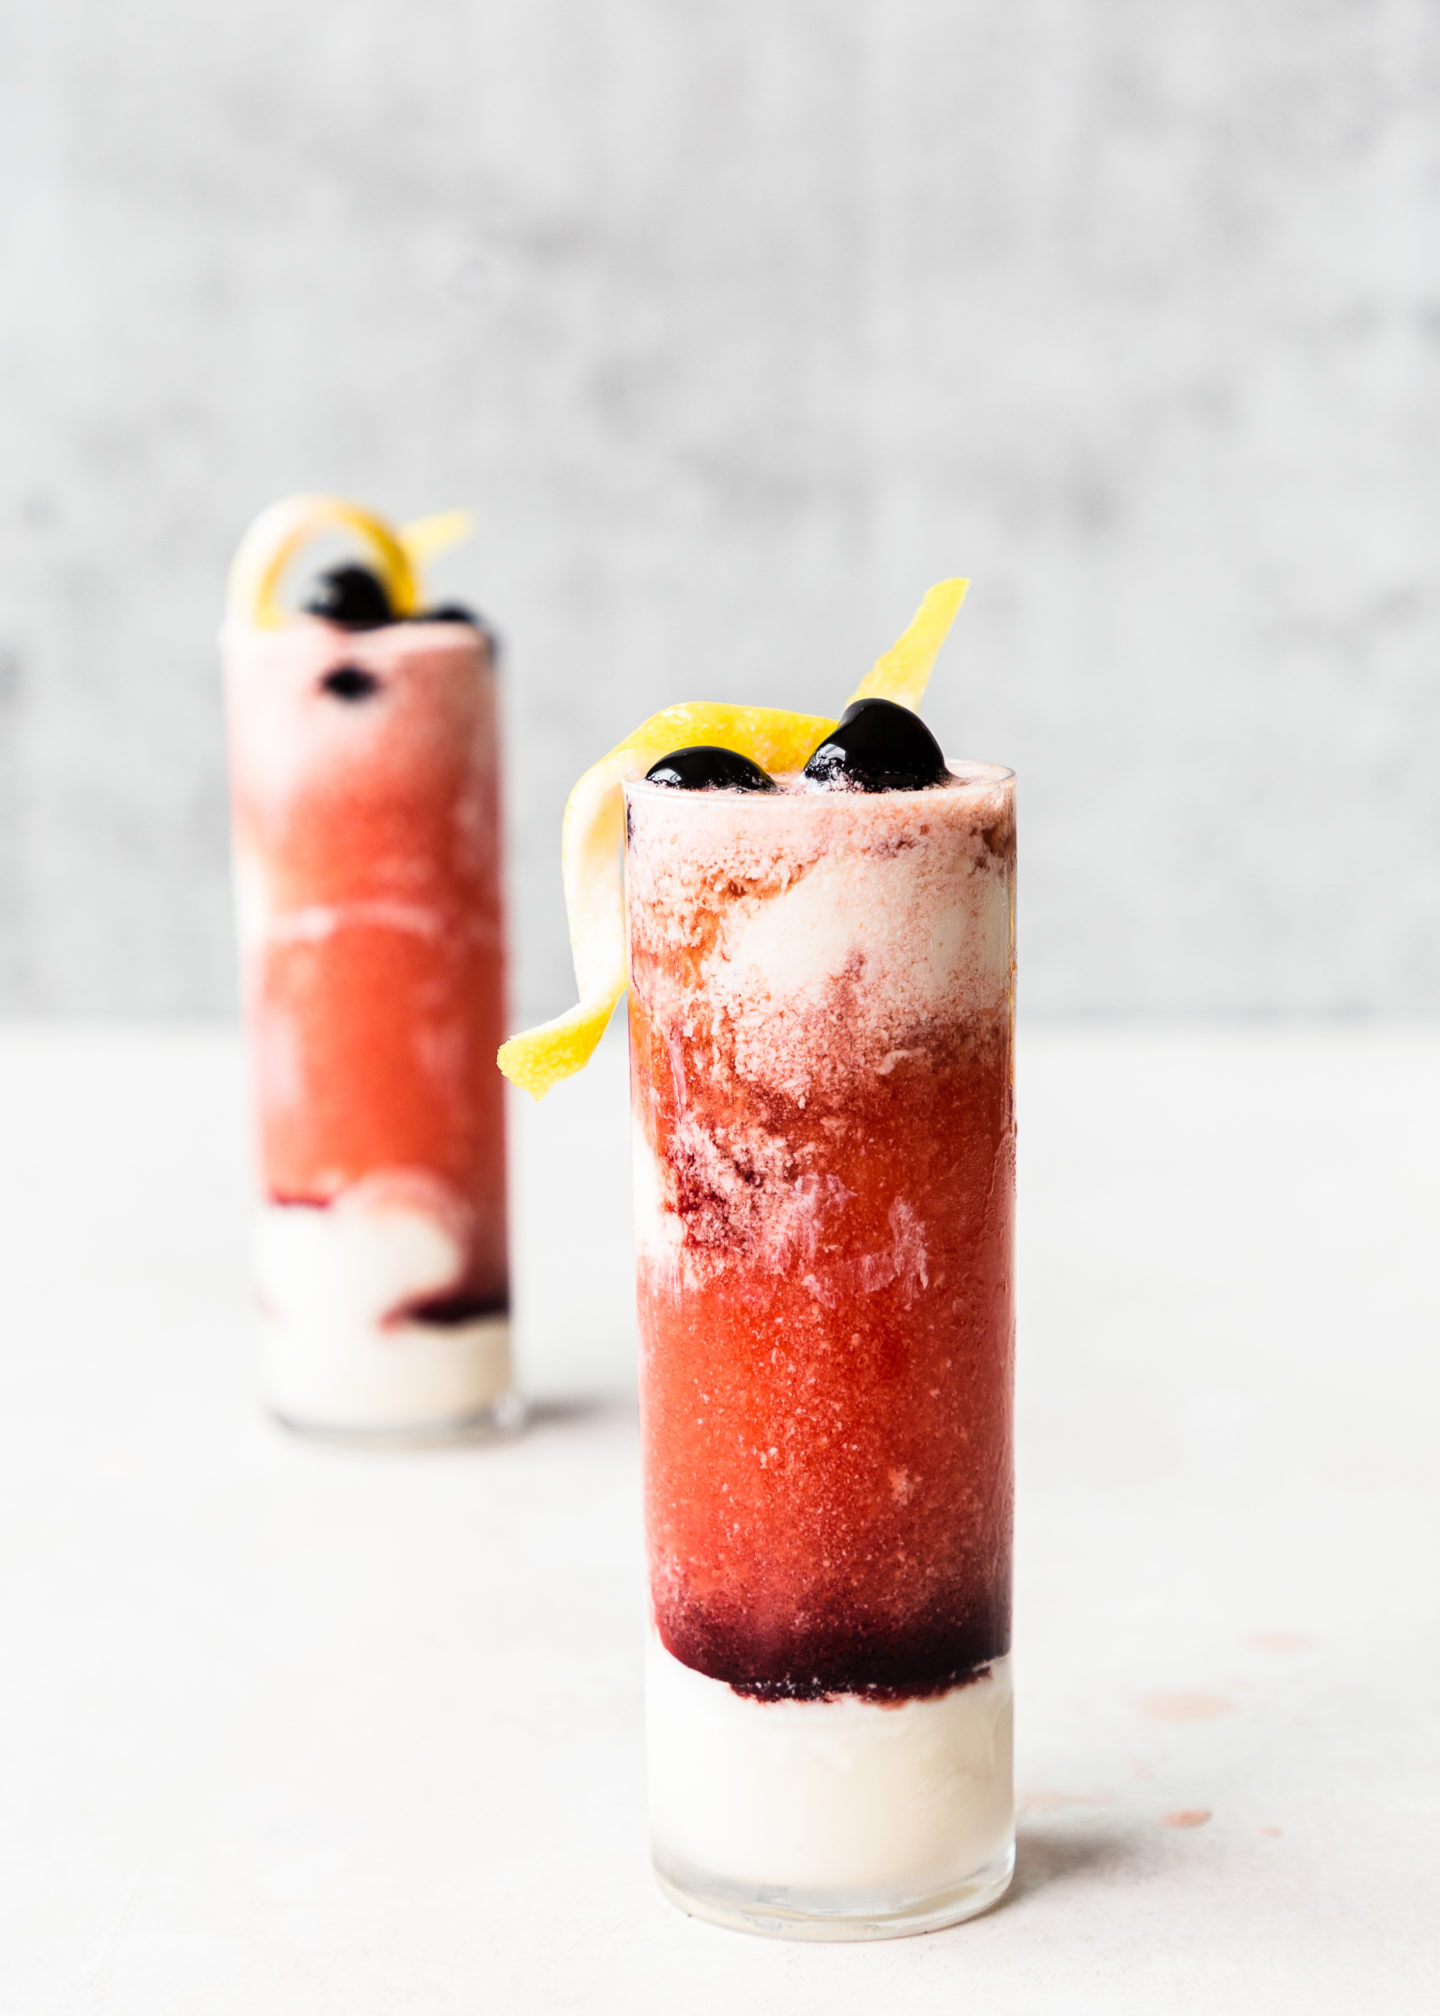 Sour Cherry Gin Ice Cream Floats